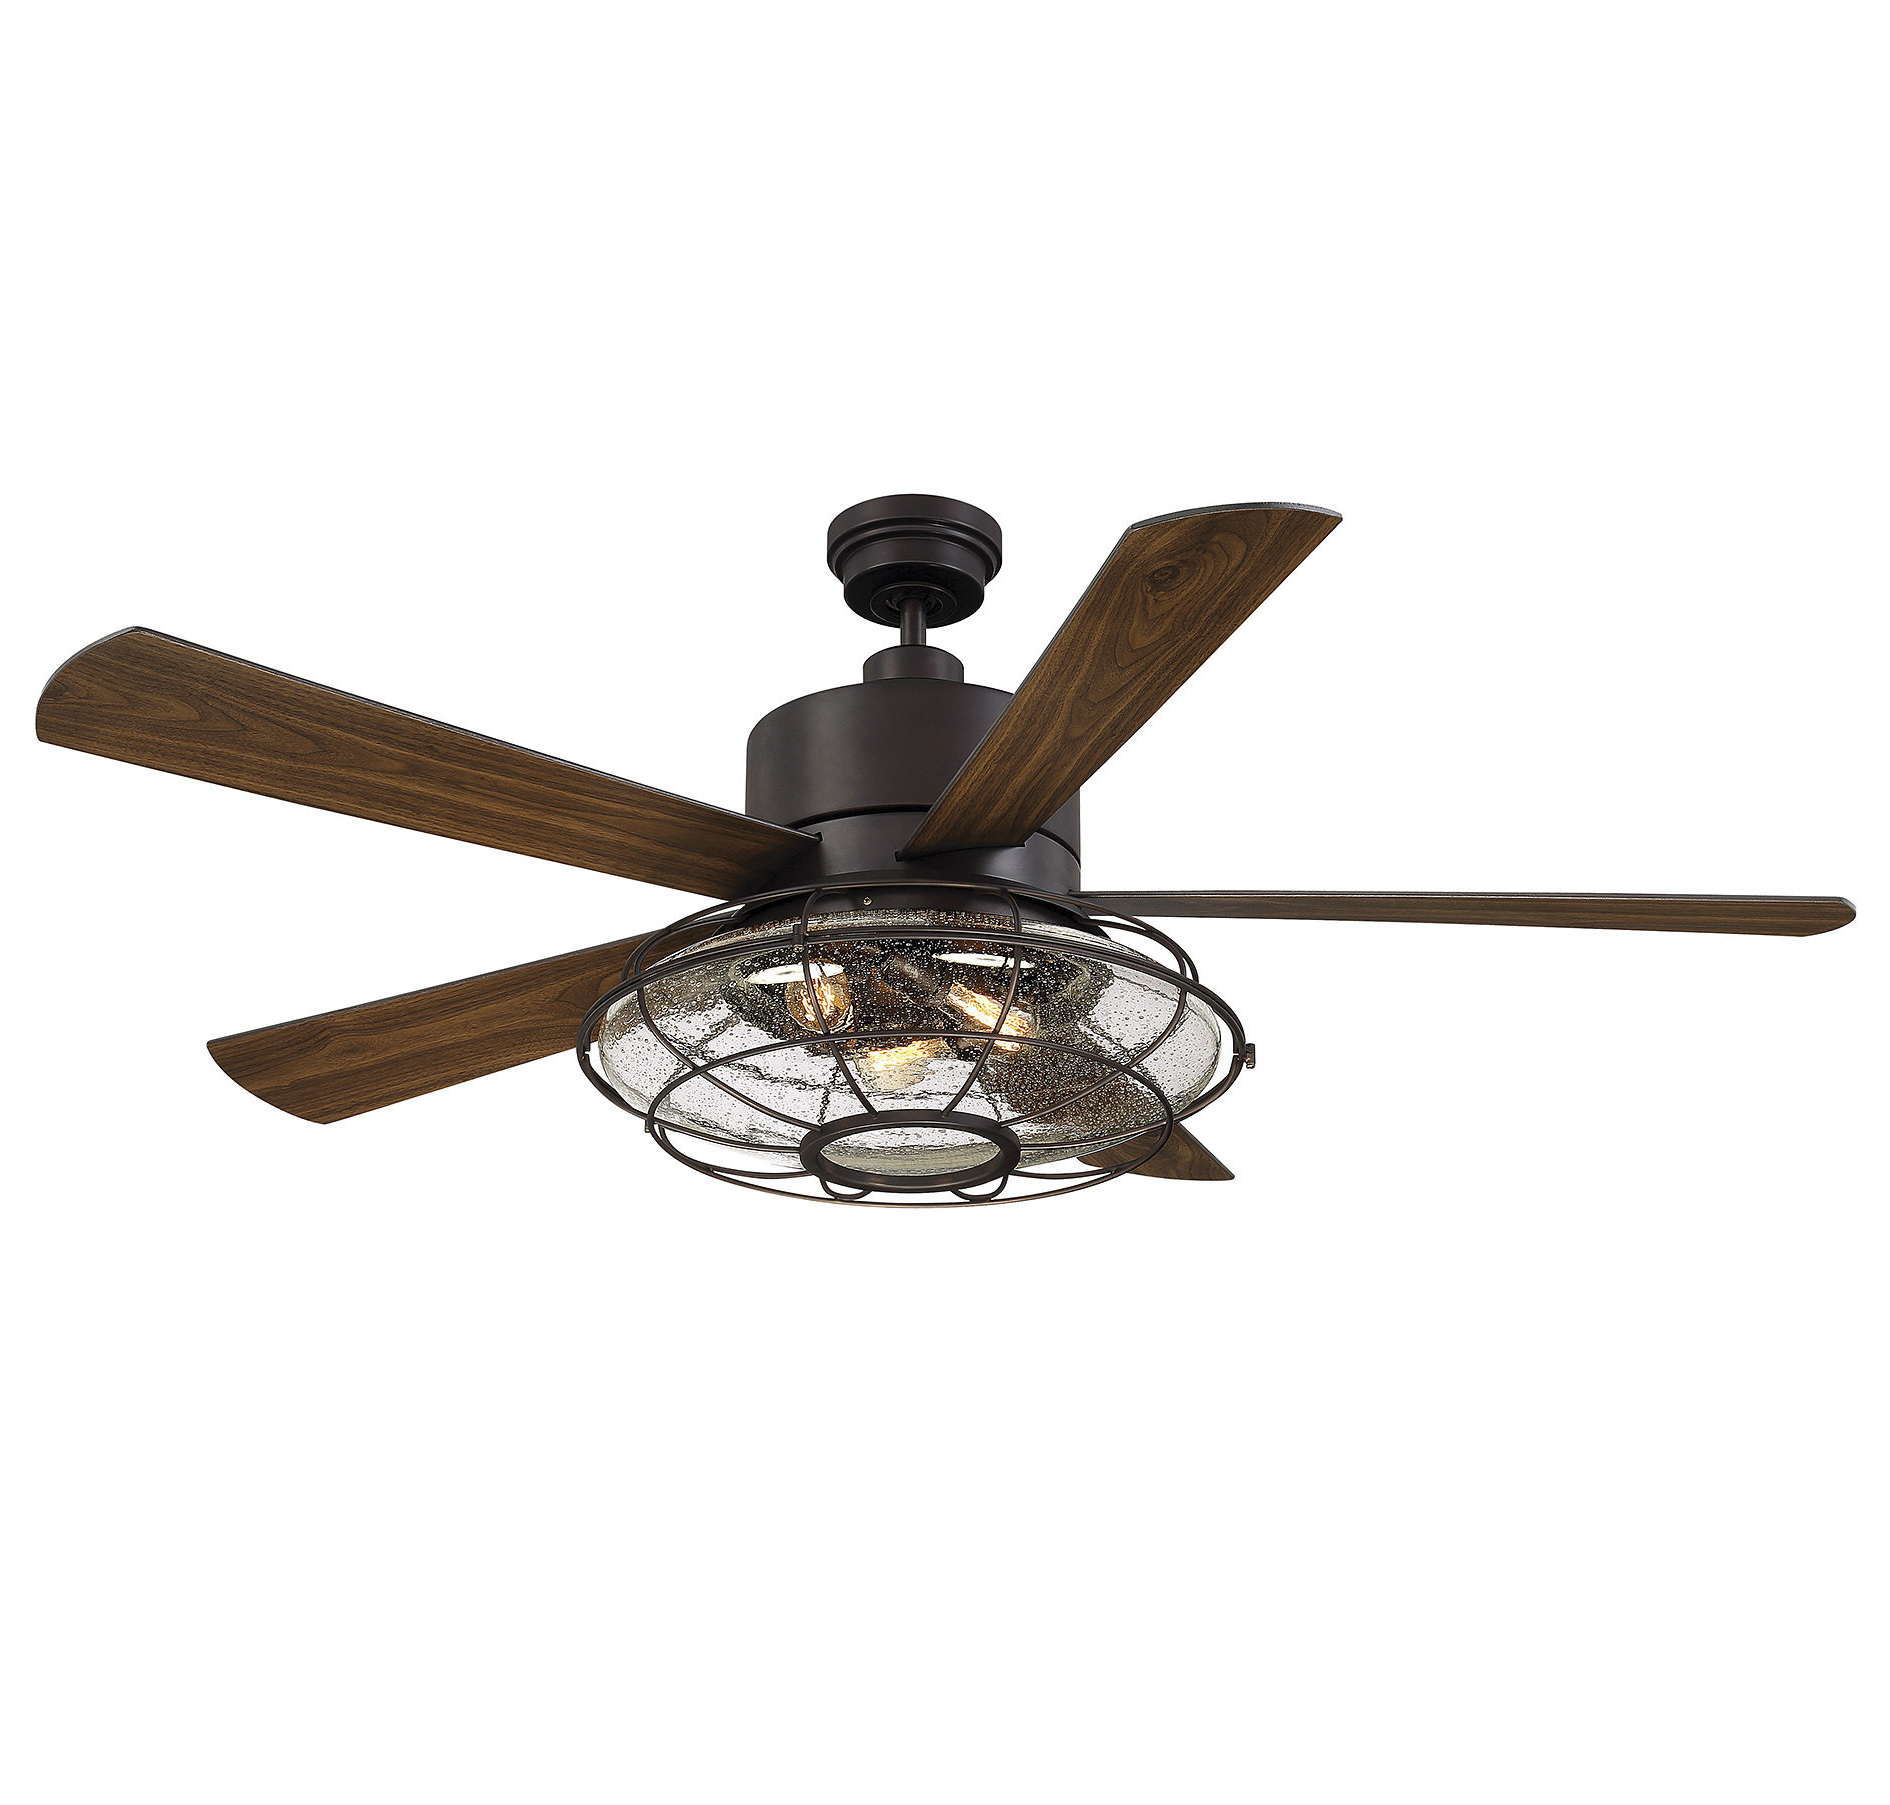 "Well Known 56"" Roberts 5 Blade Ceiling Fan With Remote Control, Light Kit Included For Dunaghy 5 Blade Ceiling Fans (View 18 of 20)"